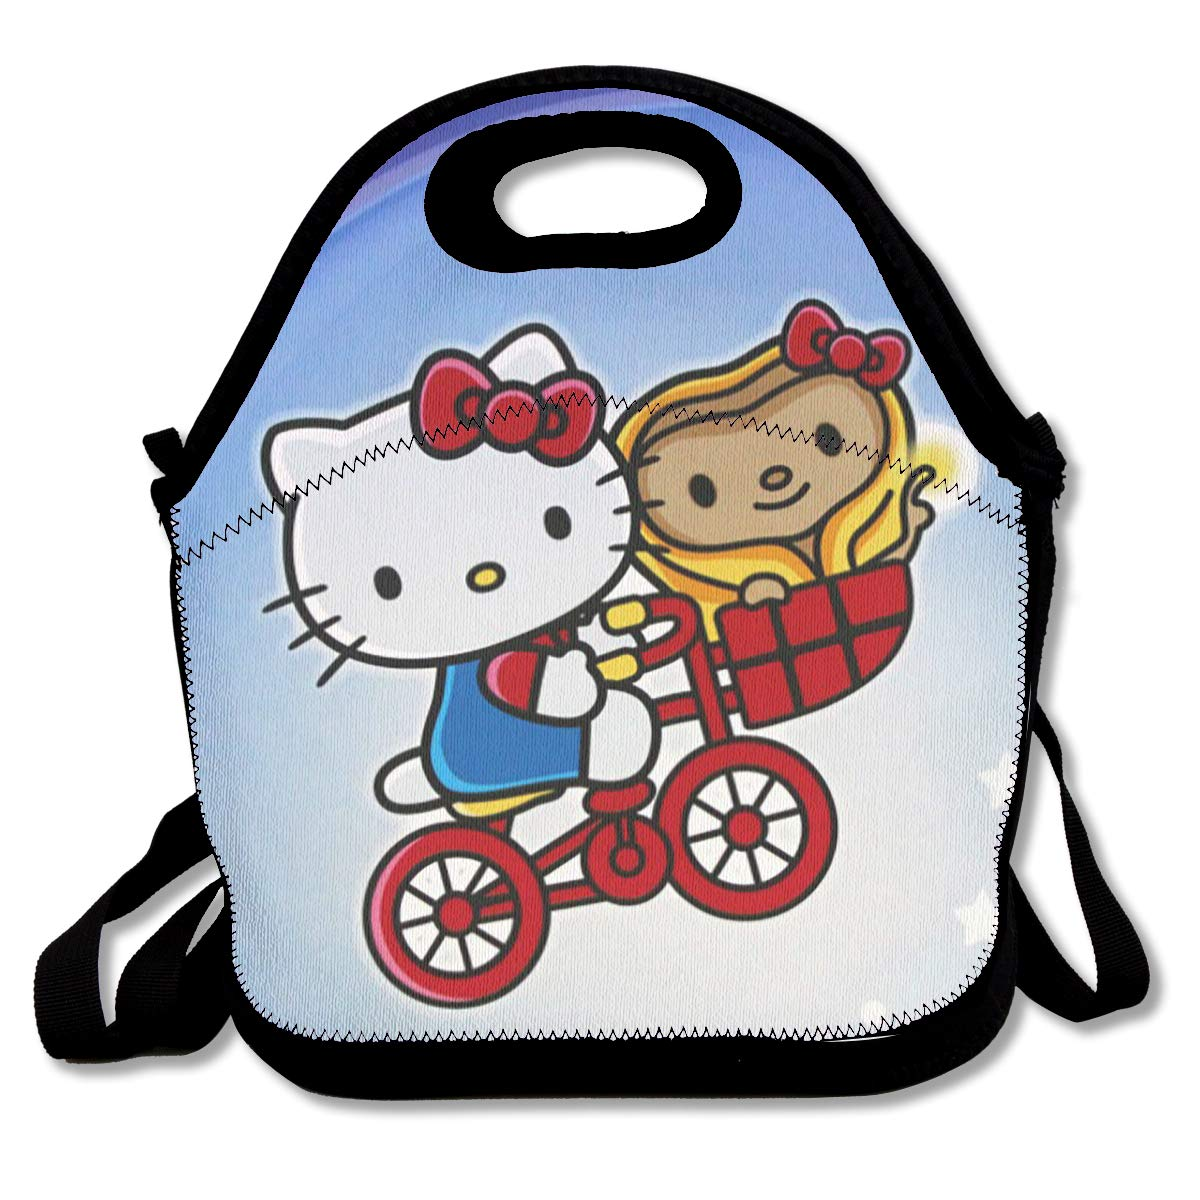 b1c94b4b1e06 Amazon.com - Meirdre Lunch Box Hello Kitty Witn Moon Insulated Personalized  Tote Lunch Food Bag -